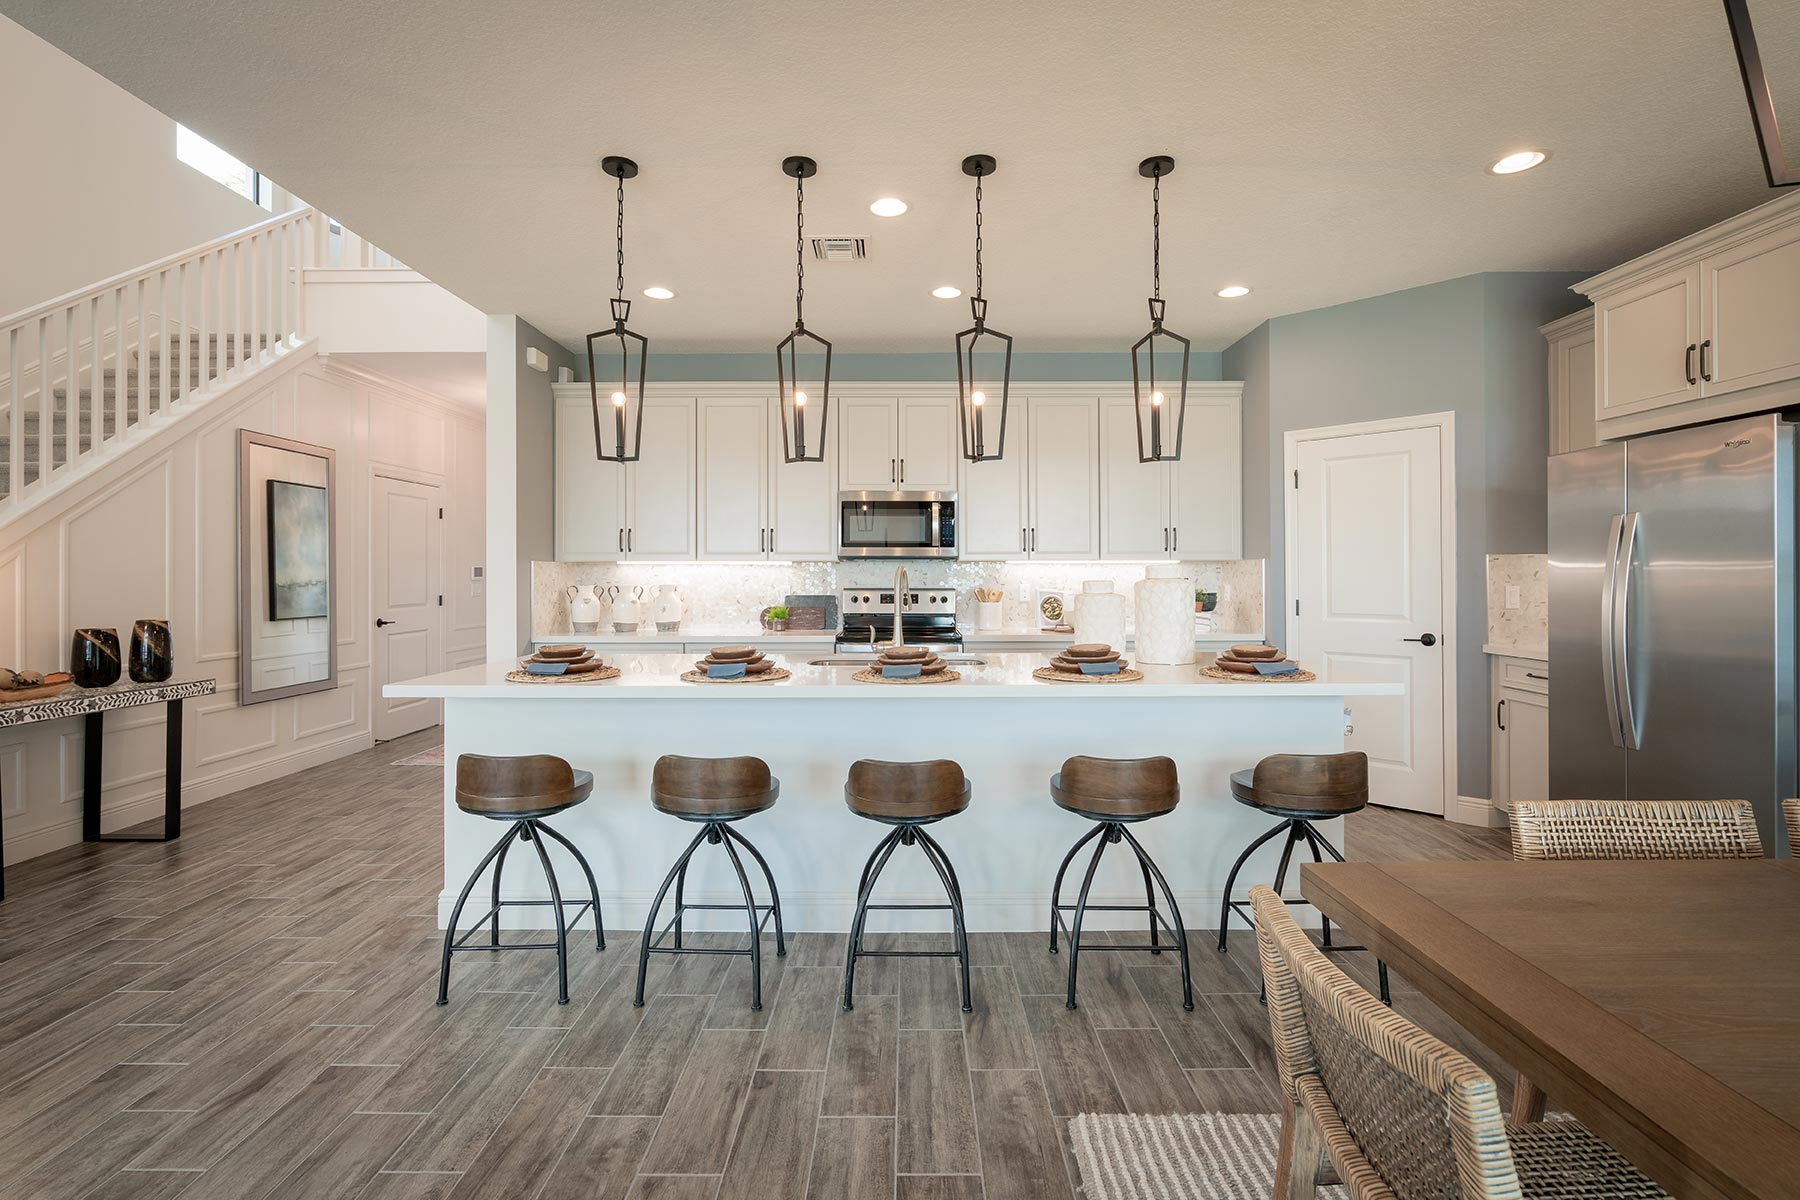 Saddlewood Kitchen in Lake Worth Florida by Mattamy Homes